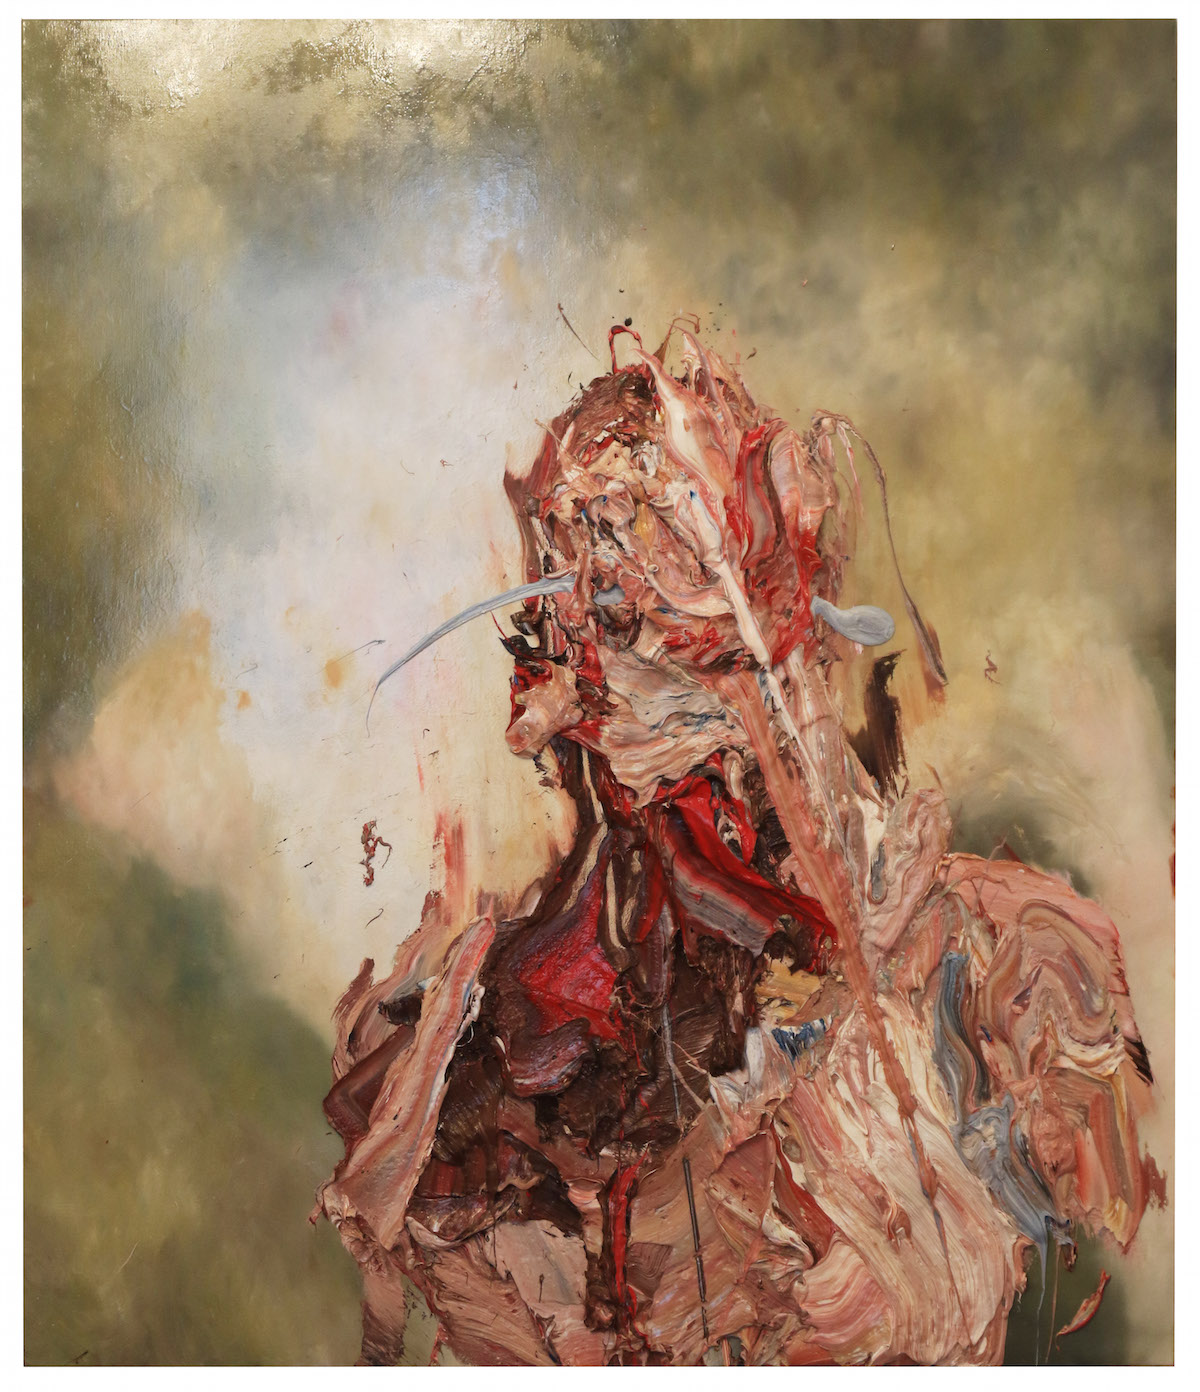 ANTONY MICALLEF  b. 1975 Raw Intent